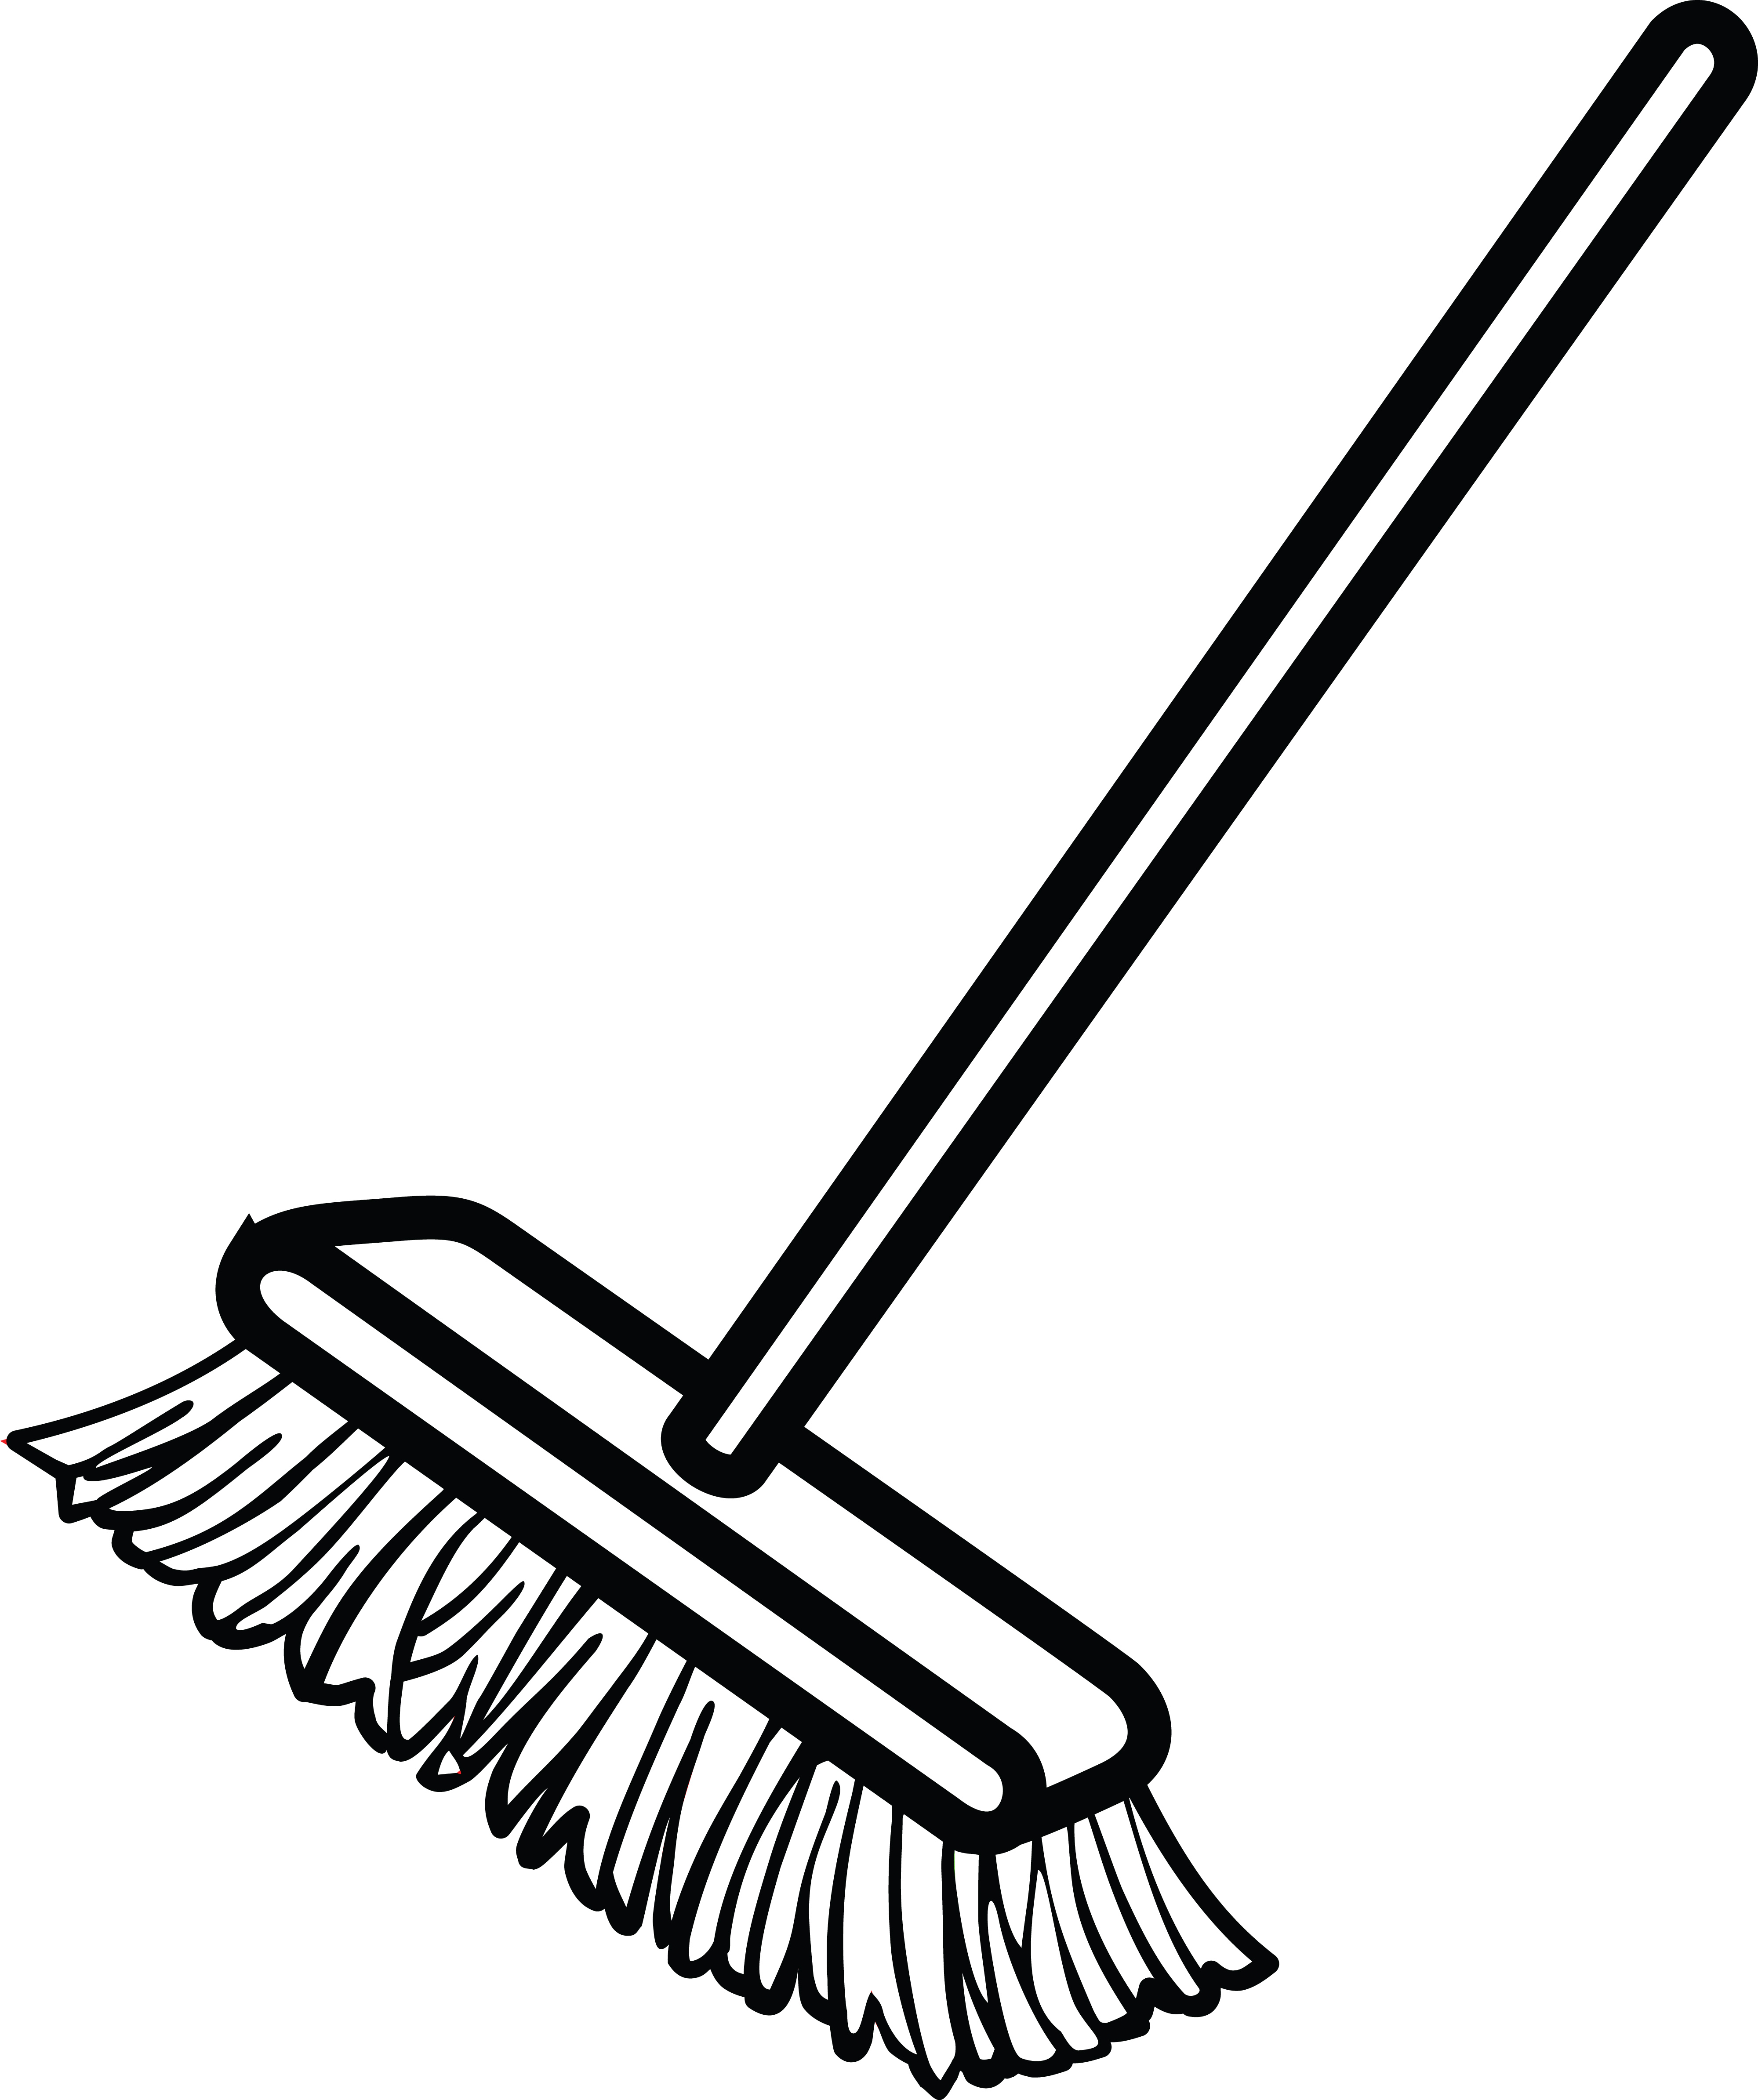 Fresh Broom Clipart Of A Shop - cilpart